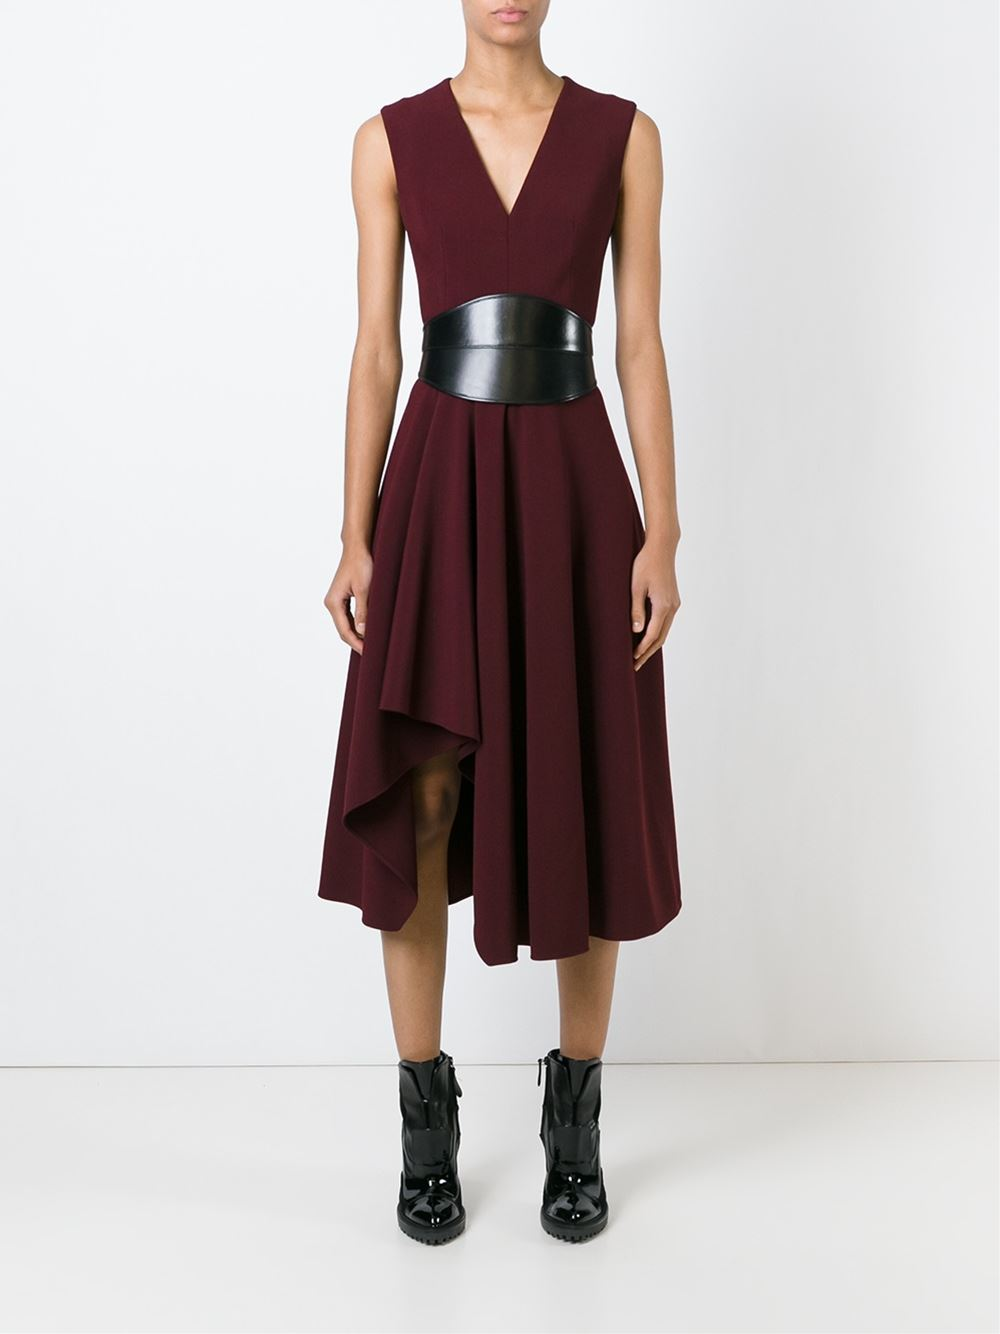 ALEXANDER MCQUEEN Asymmetric Drape Dress $2245